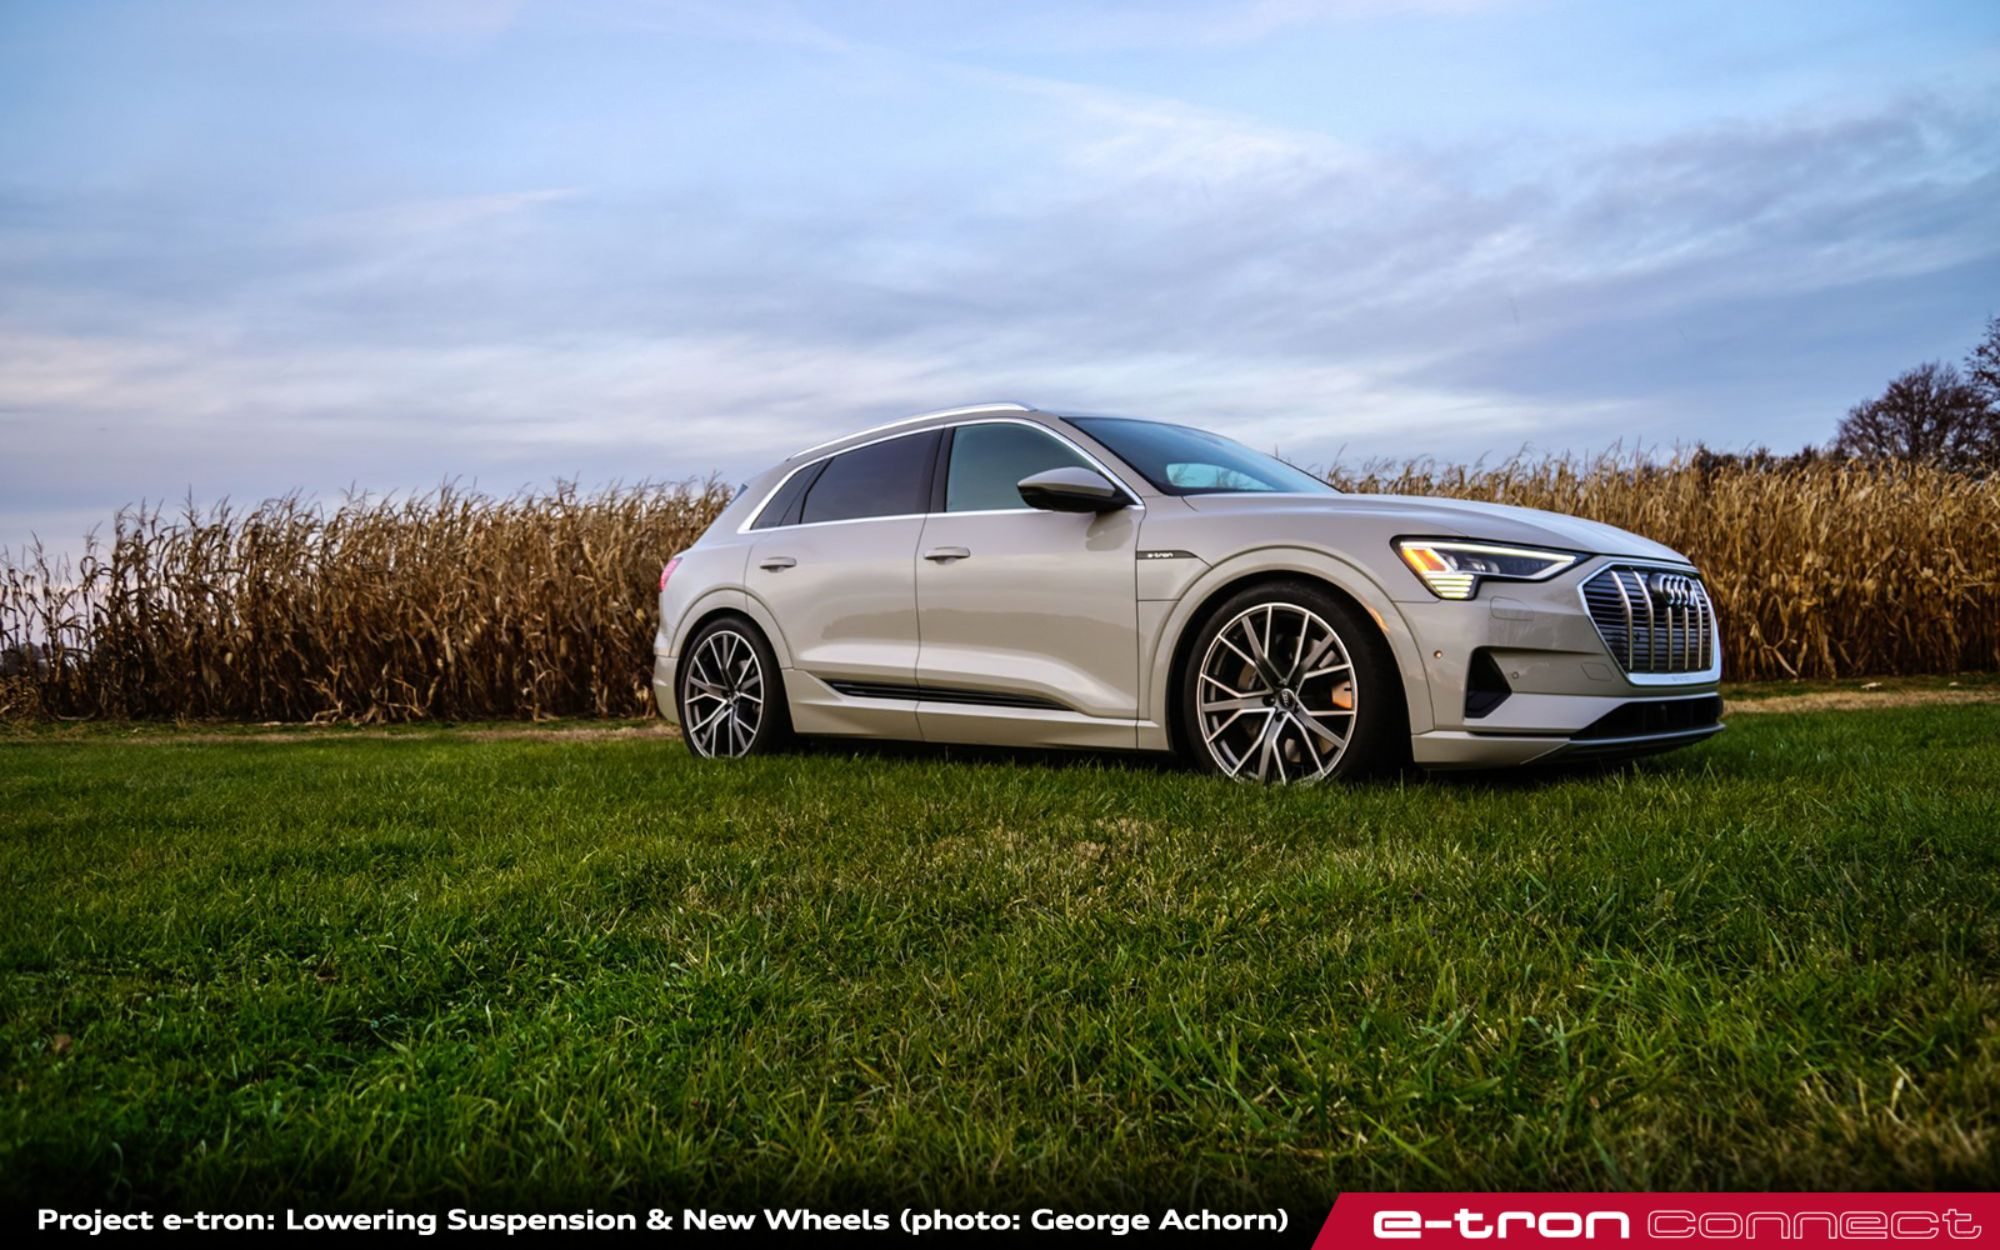 e-tron connect: quattro Magazine Q2_2020: Project e-tron – Lowering Suspension & New Wheels